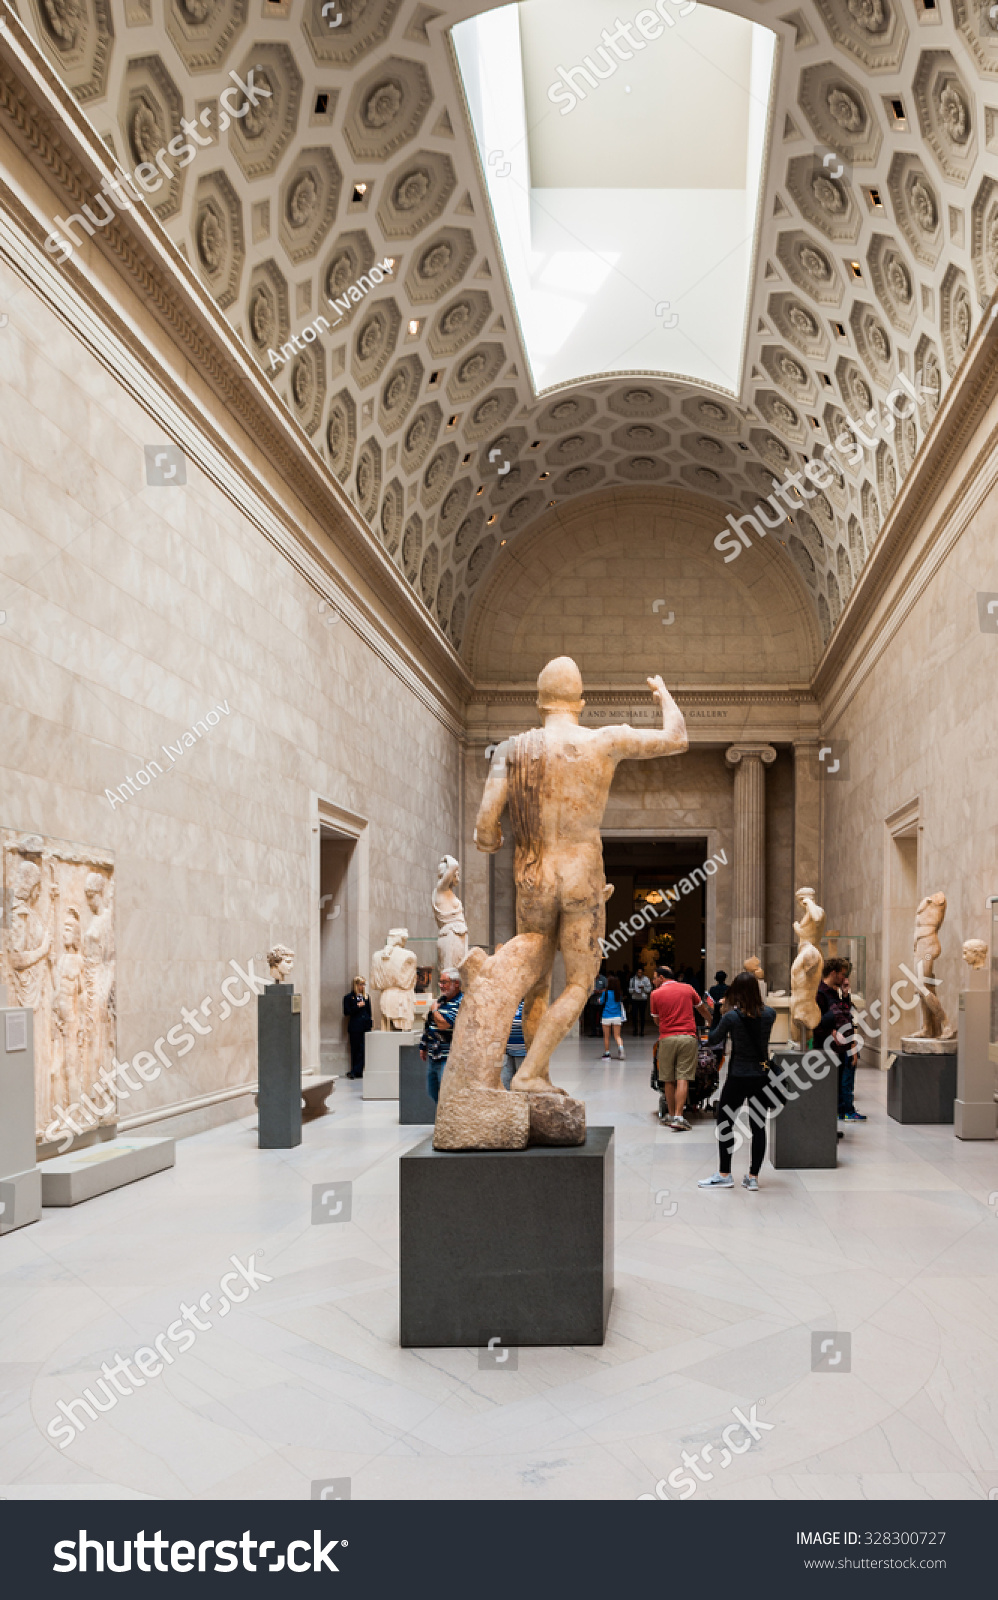 Largest Art Museum In The United States Best Image InternetinInfo - Number of art museums in usa